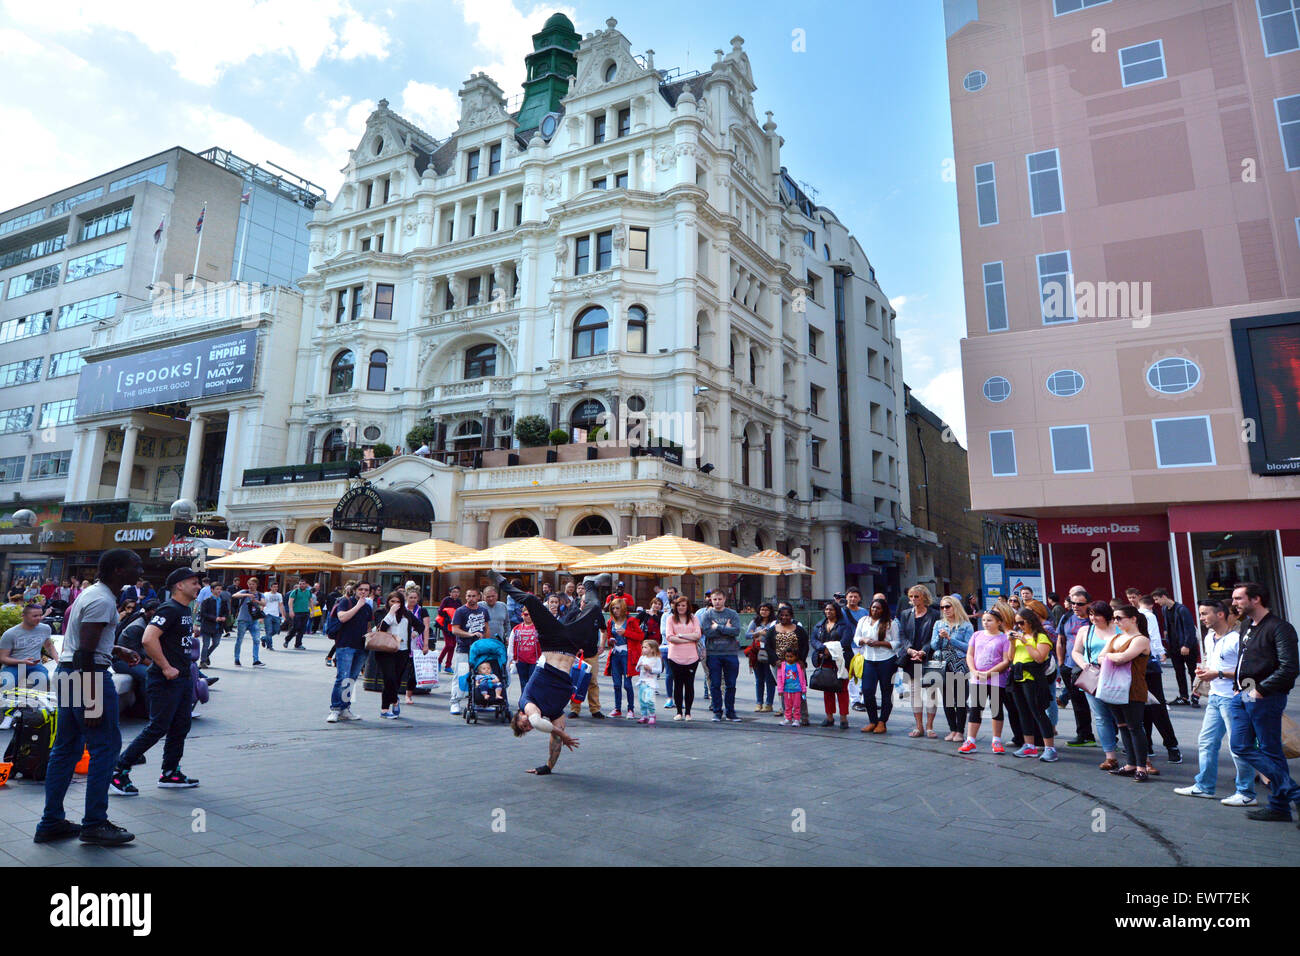 LONDON - MAY 13 2015:Street dancing show in Leicester Square London UK.The square is the prime location in London - Stock Image